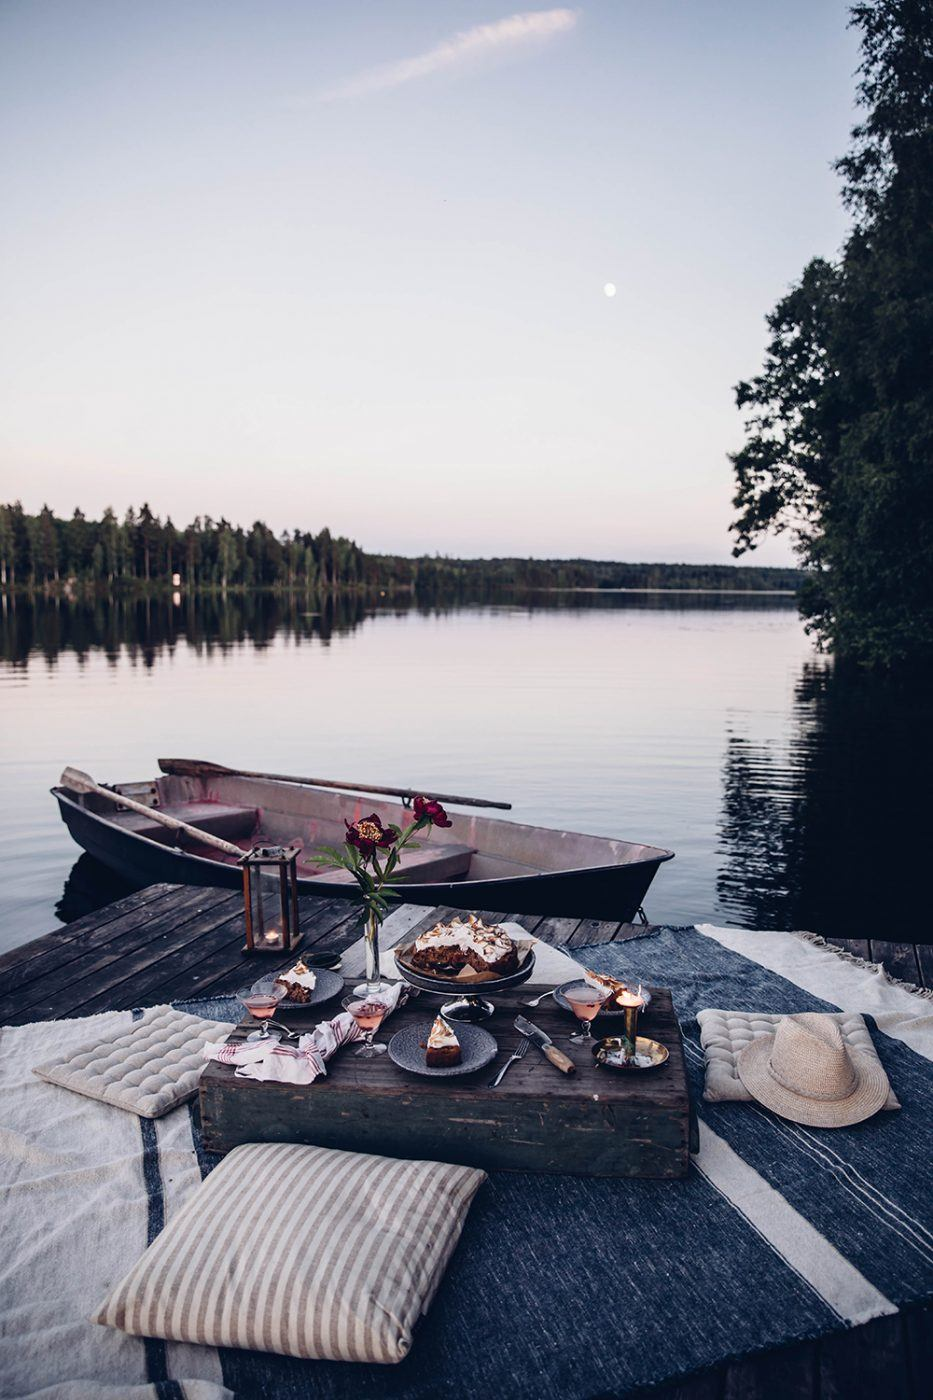 Image for Moon Picnic in Sweden at the Lake – & a delicious Rhubarb-Lingonberry-Cake with Meringue